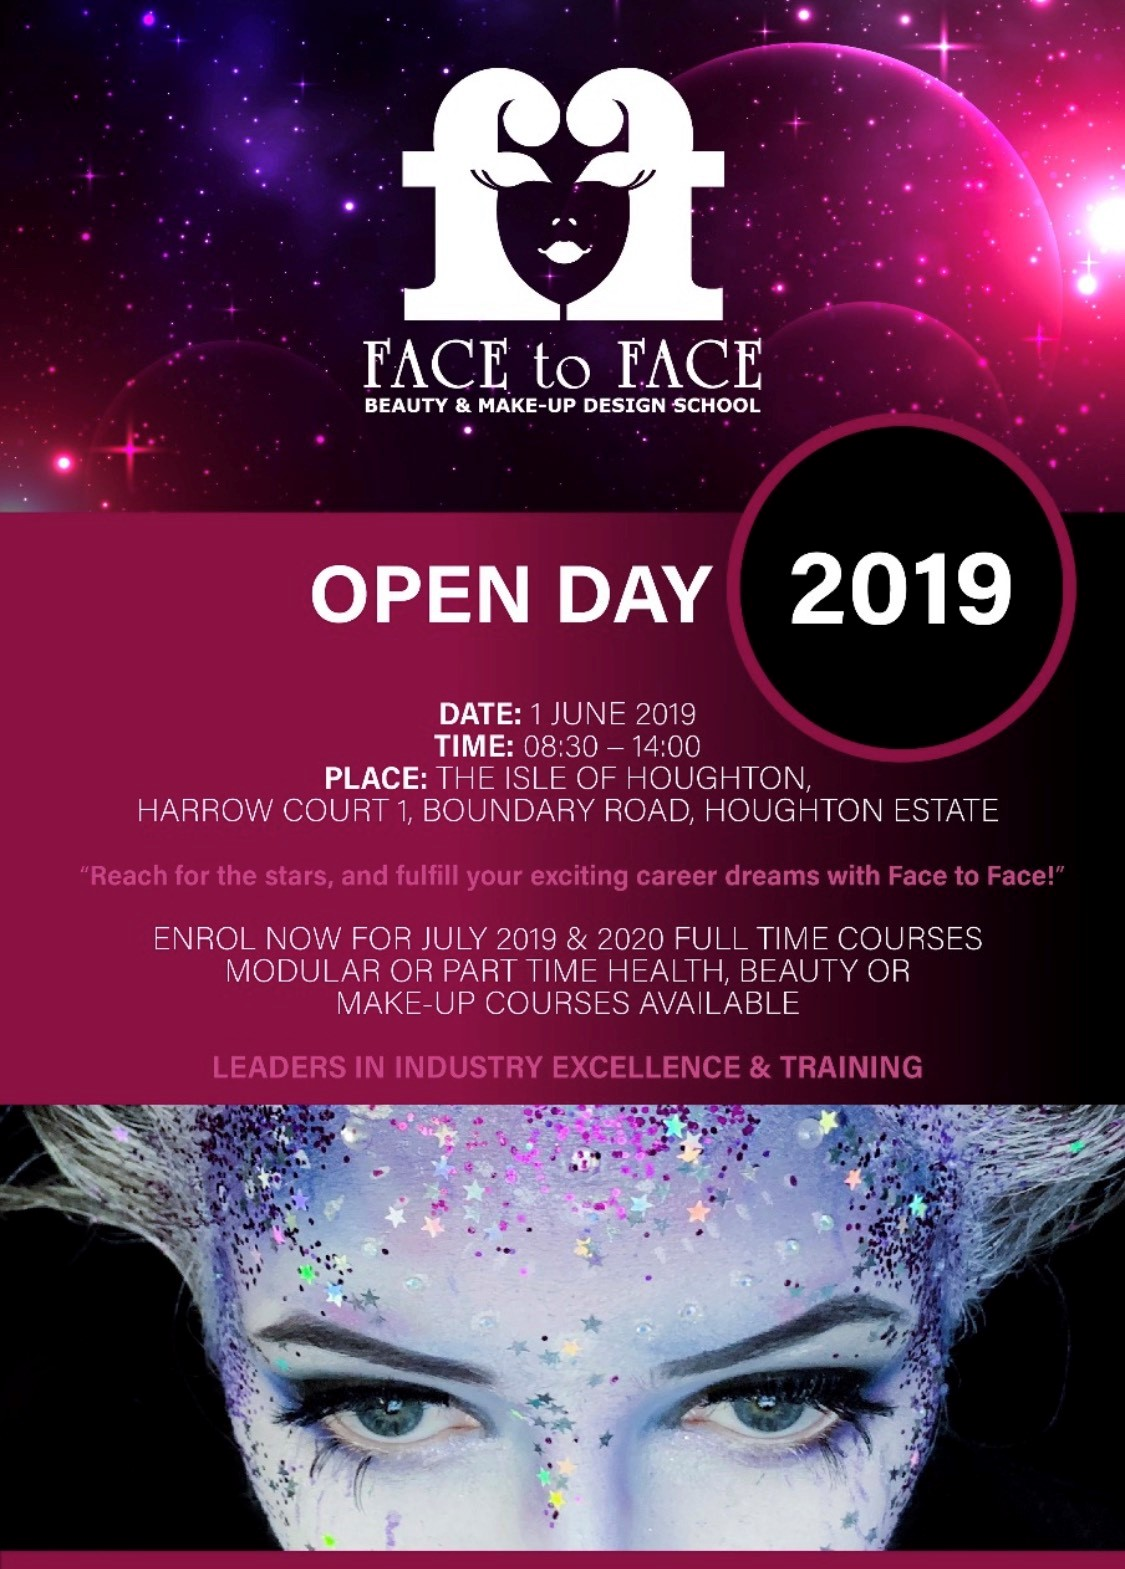 Face to Face Open Day 2019